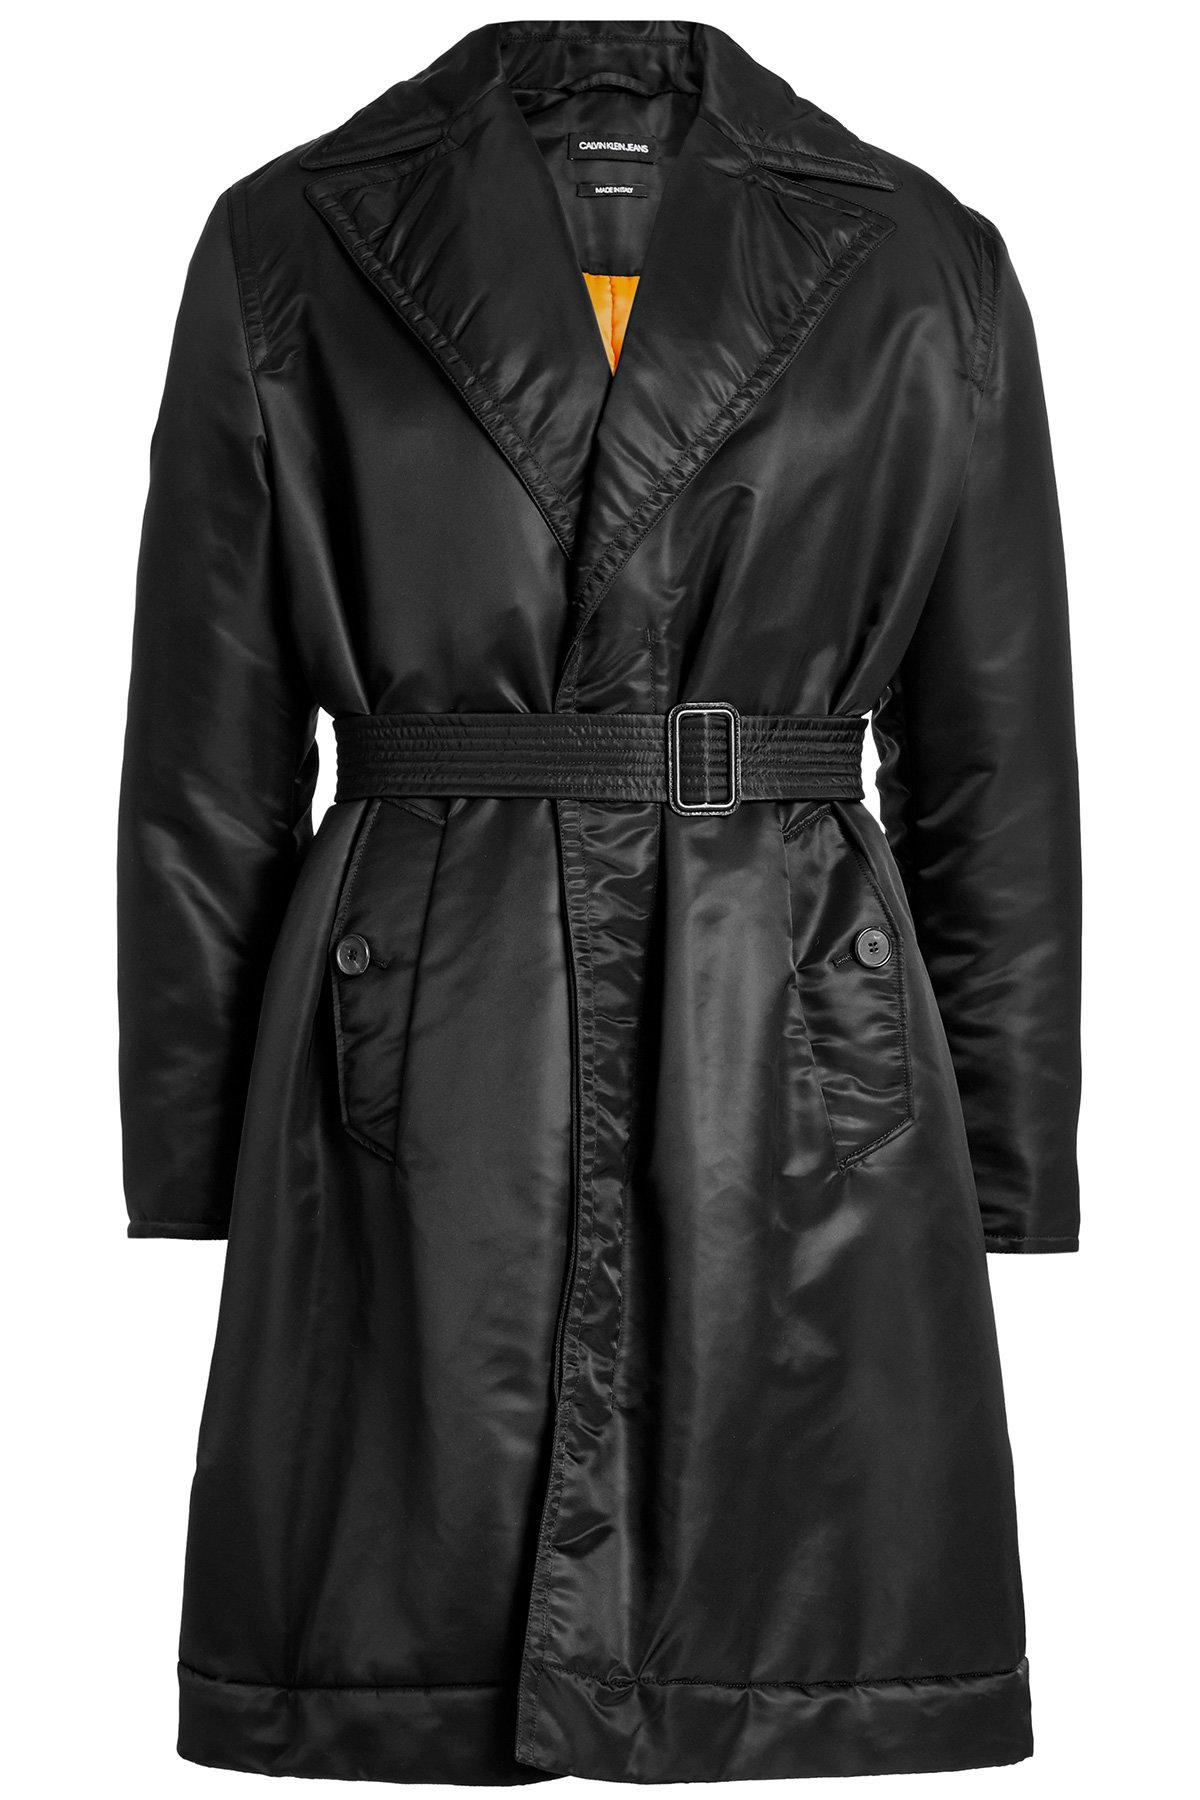 Calvin Klein 205W39Nyc Trench Coat With Filling In Black